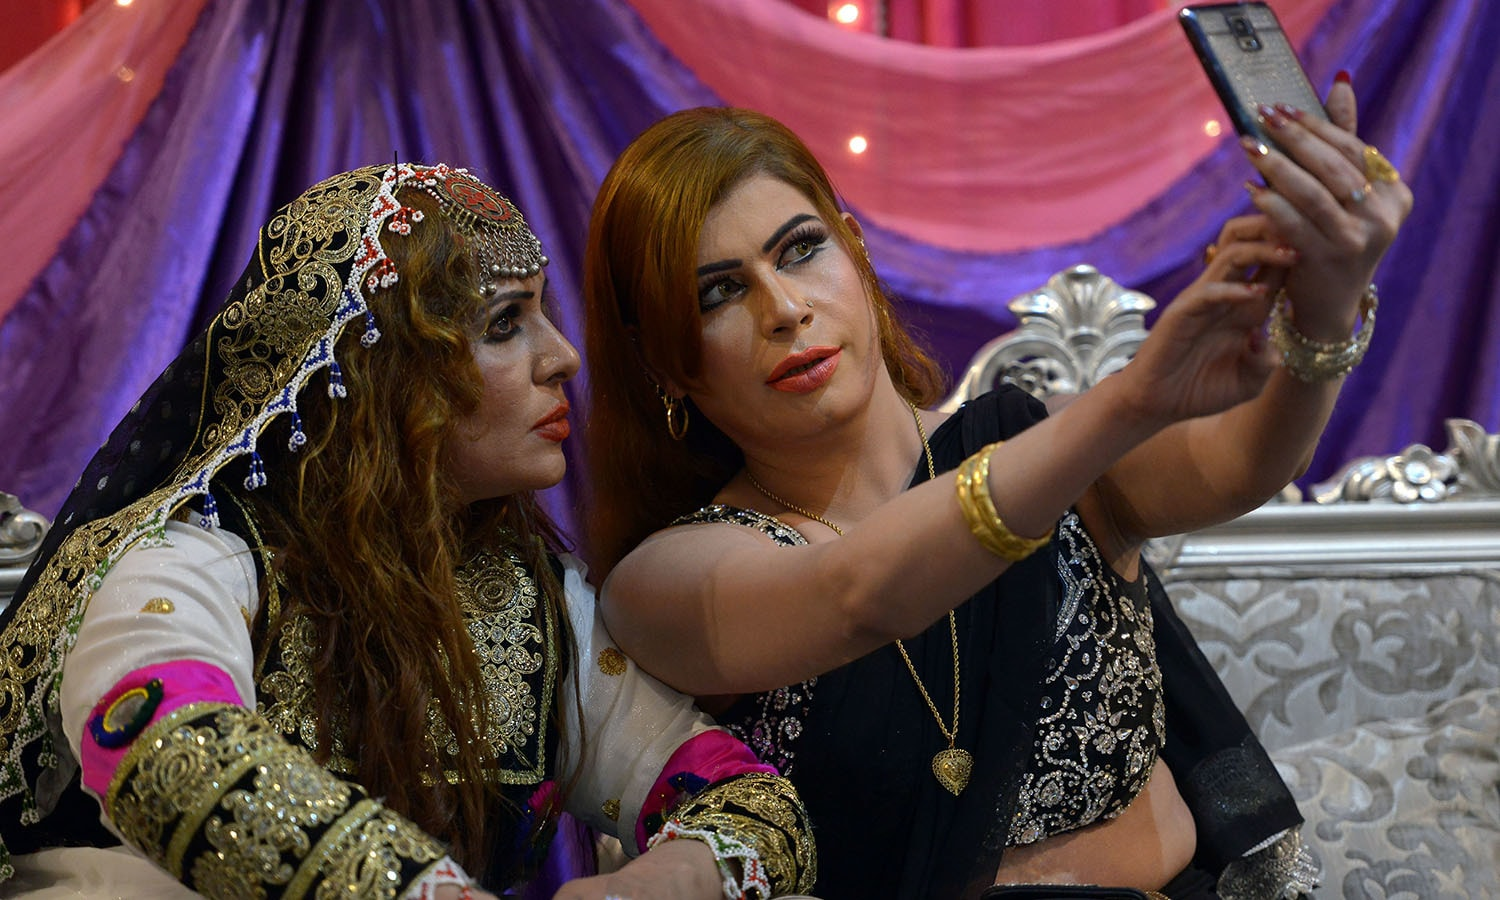 Members of the Pakistani transgender community attend a party in Peshawar.─AFP